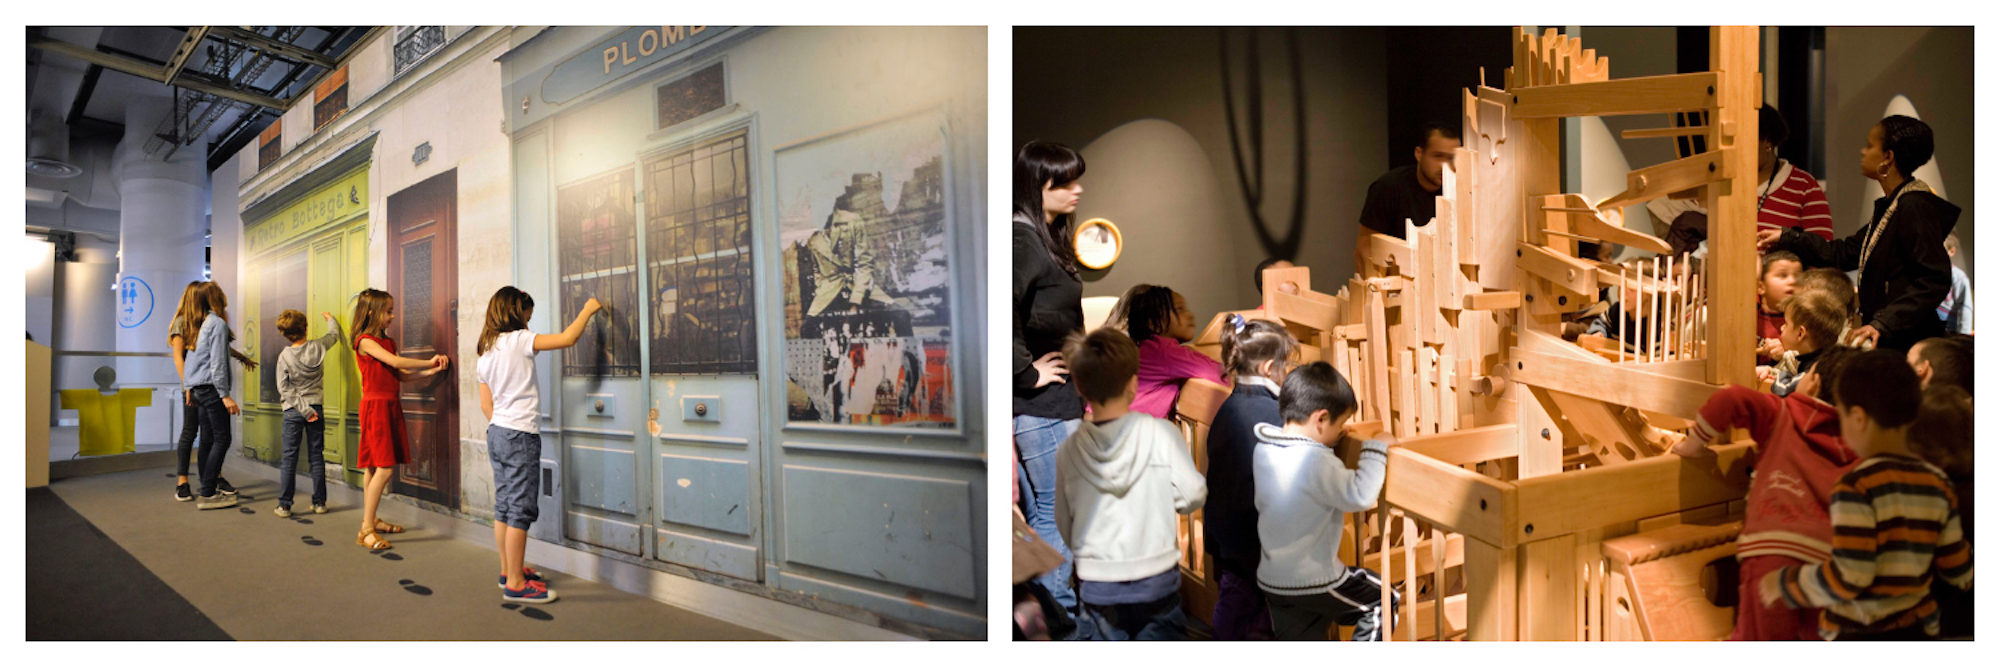 Kids drawing on the walls (left) and exploring the interactive exhibits (right) at Paris' Science Museum.